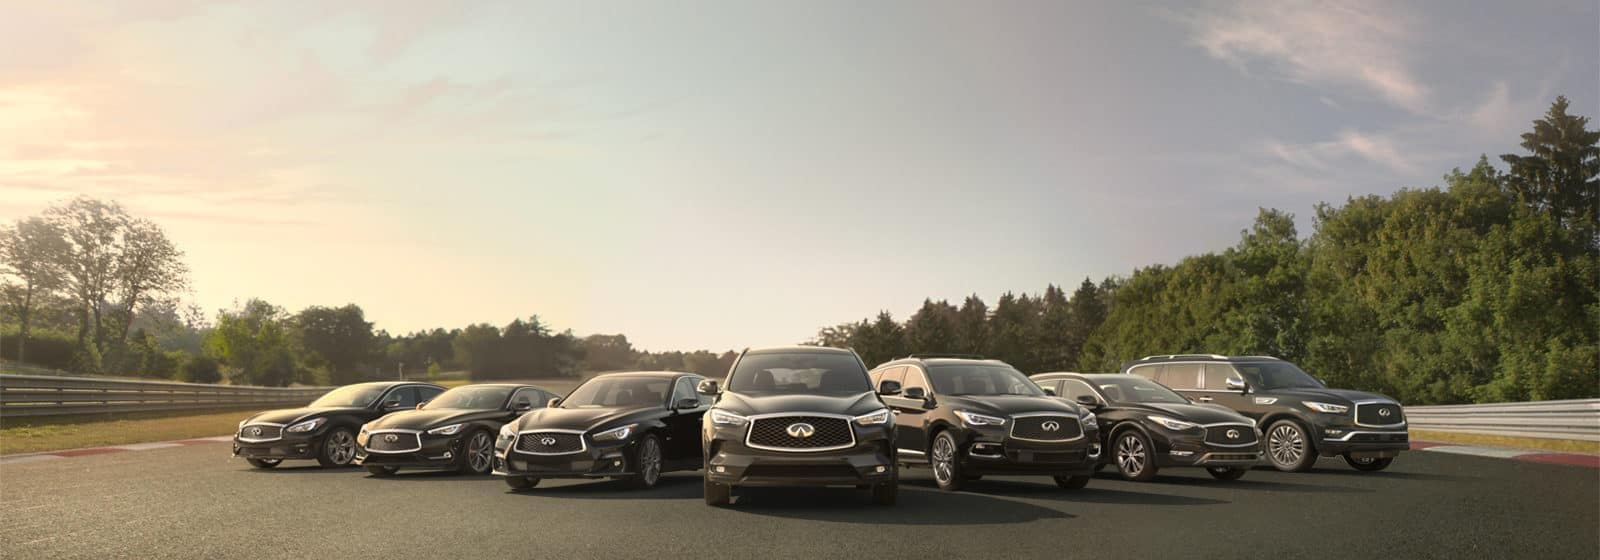 Elk Grove Infiniti >> Infiniti Roseville Infiniti Dealer Serving The Sacramento Area